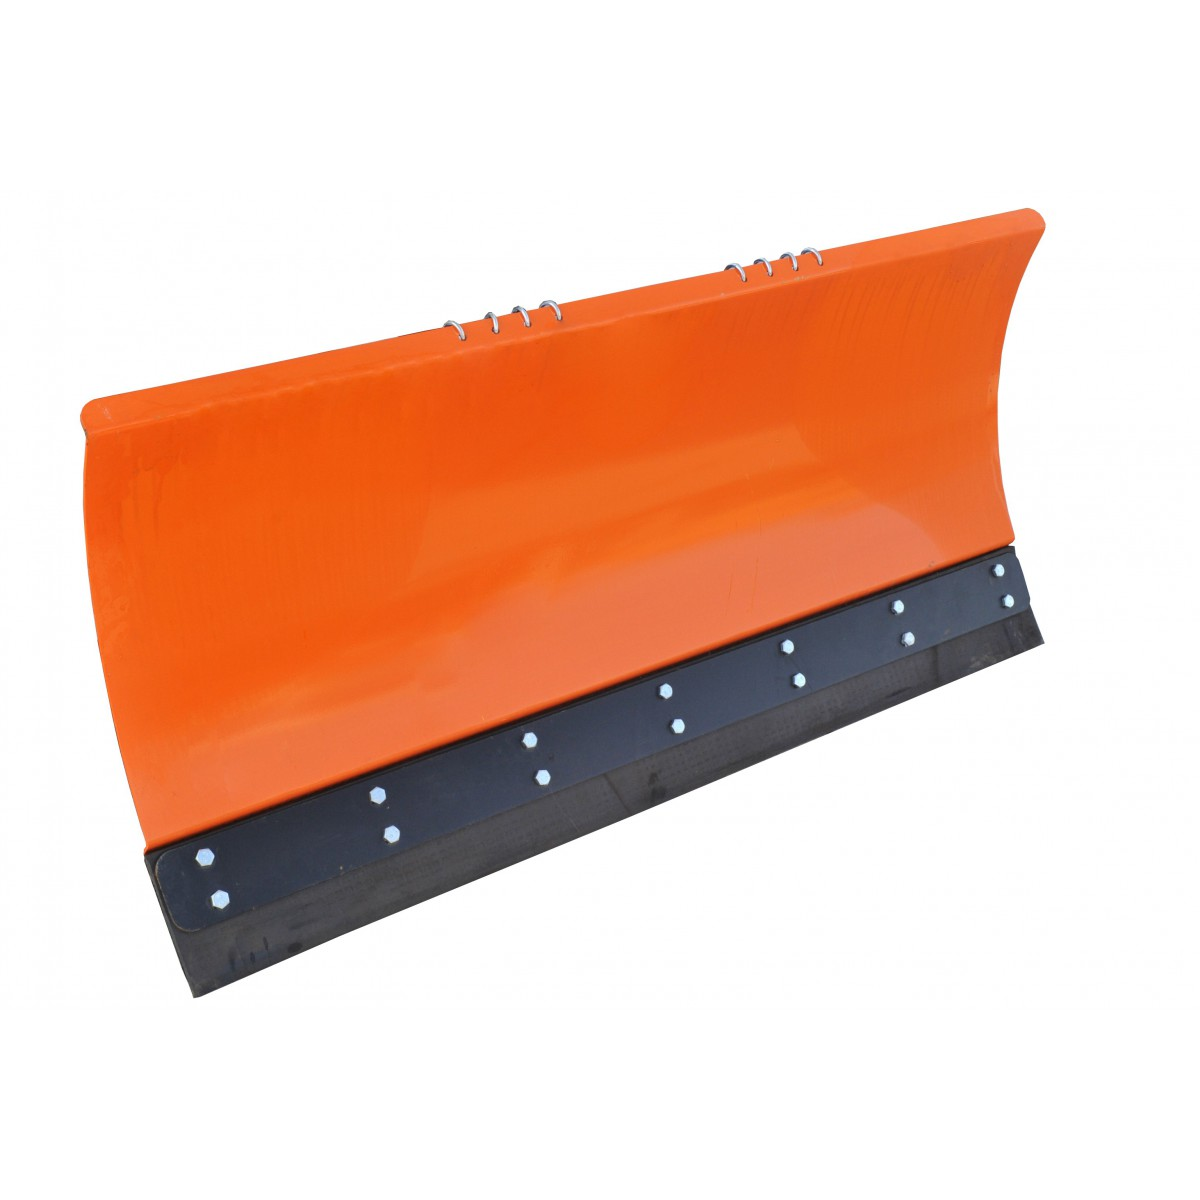 Plow ( BLADE only 130 cm ) for snow 1300 mm